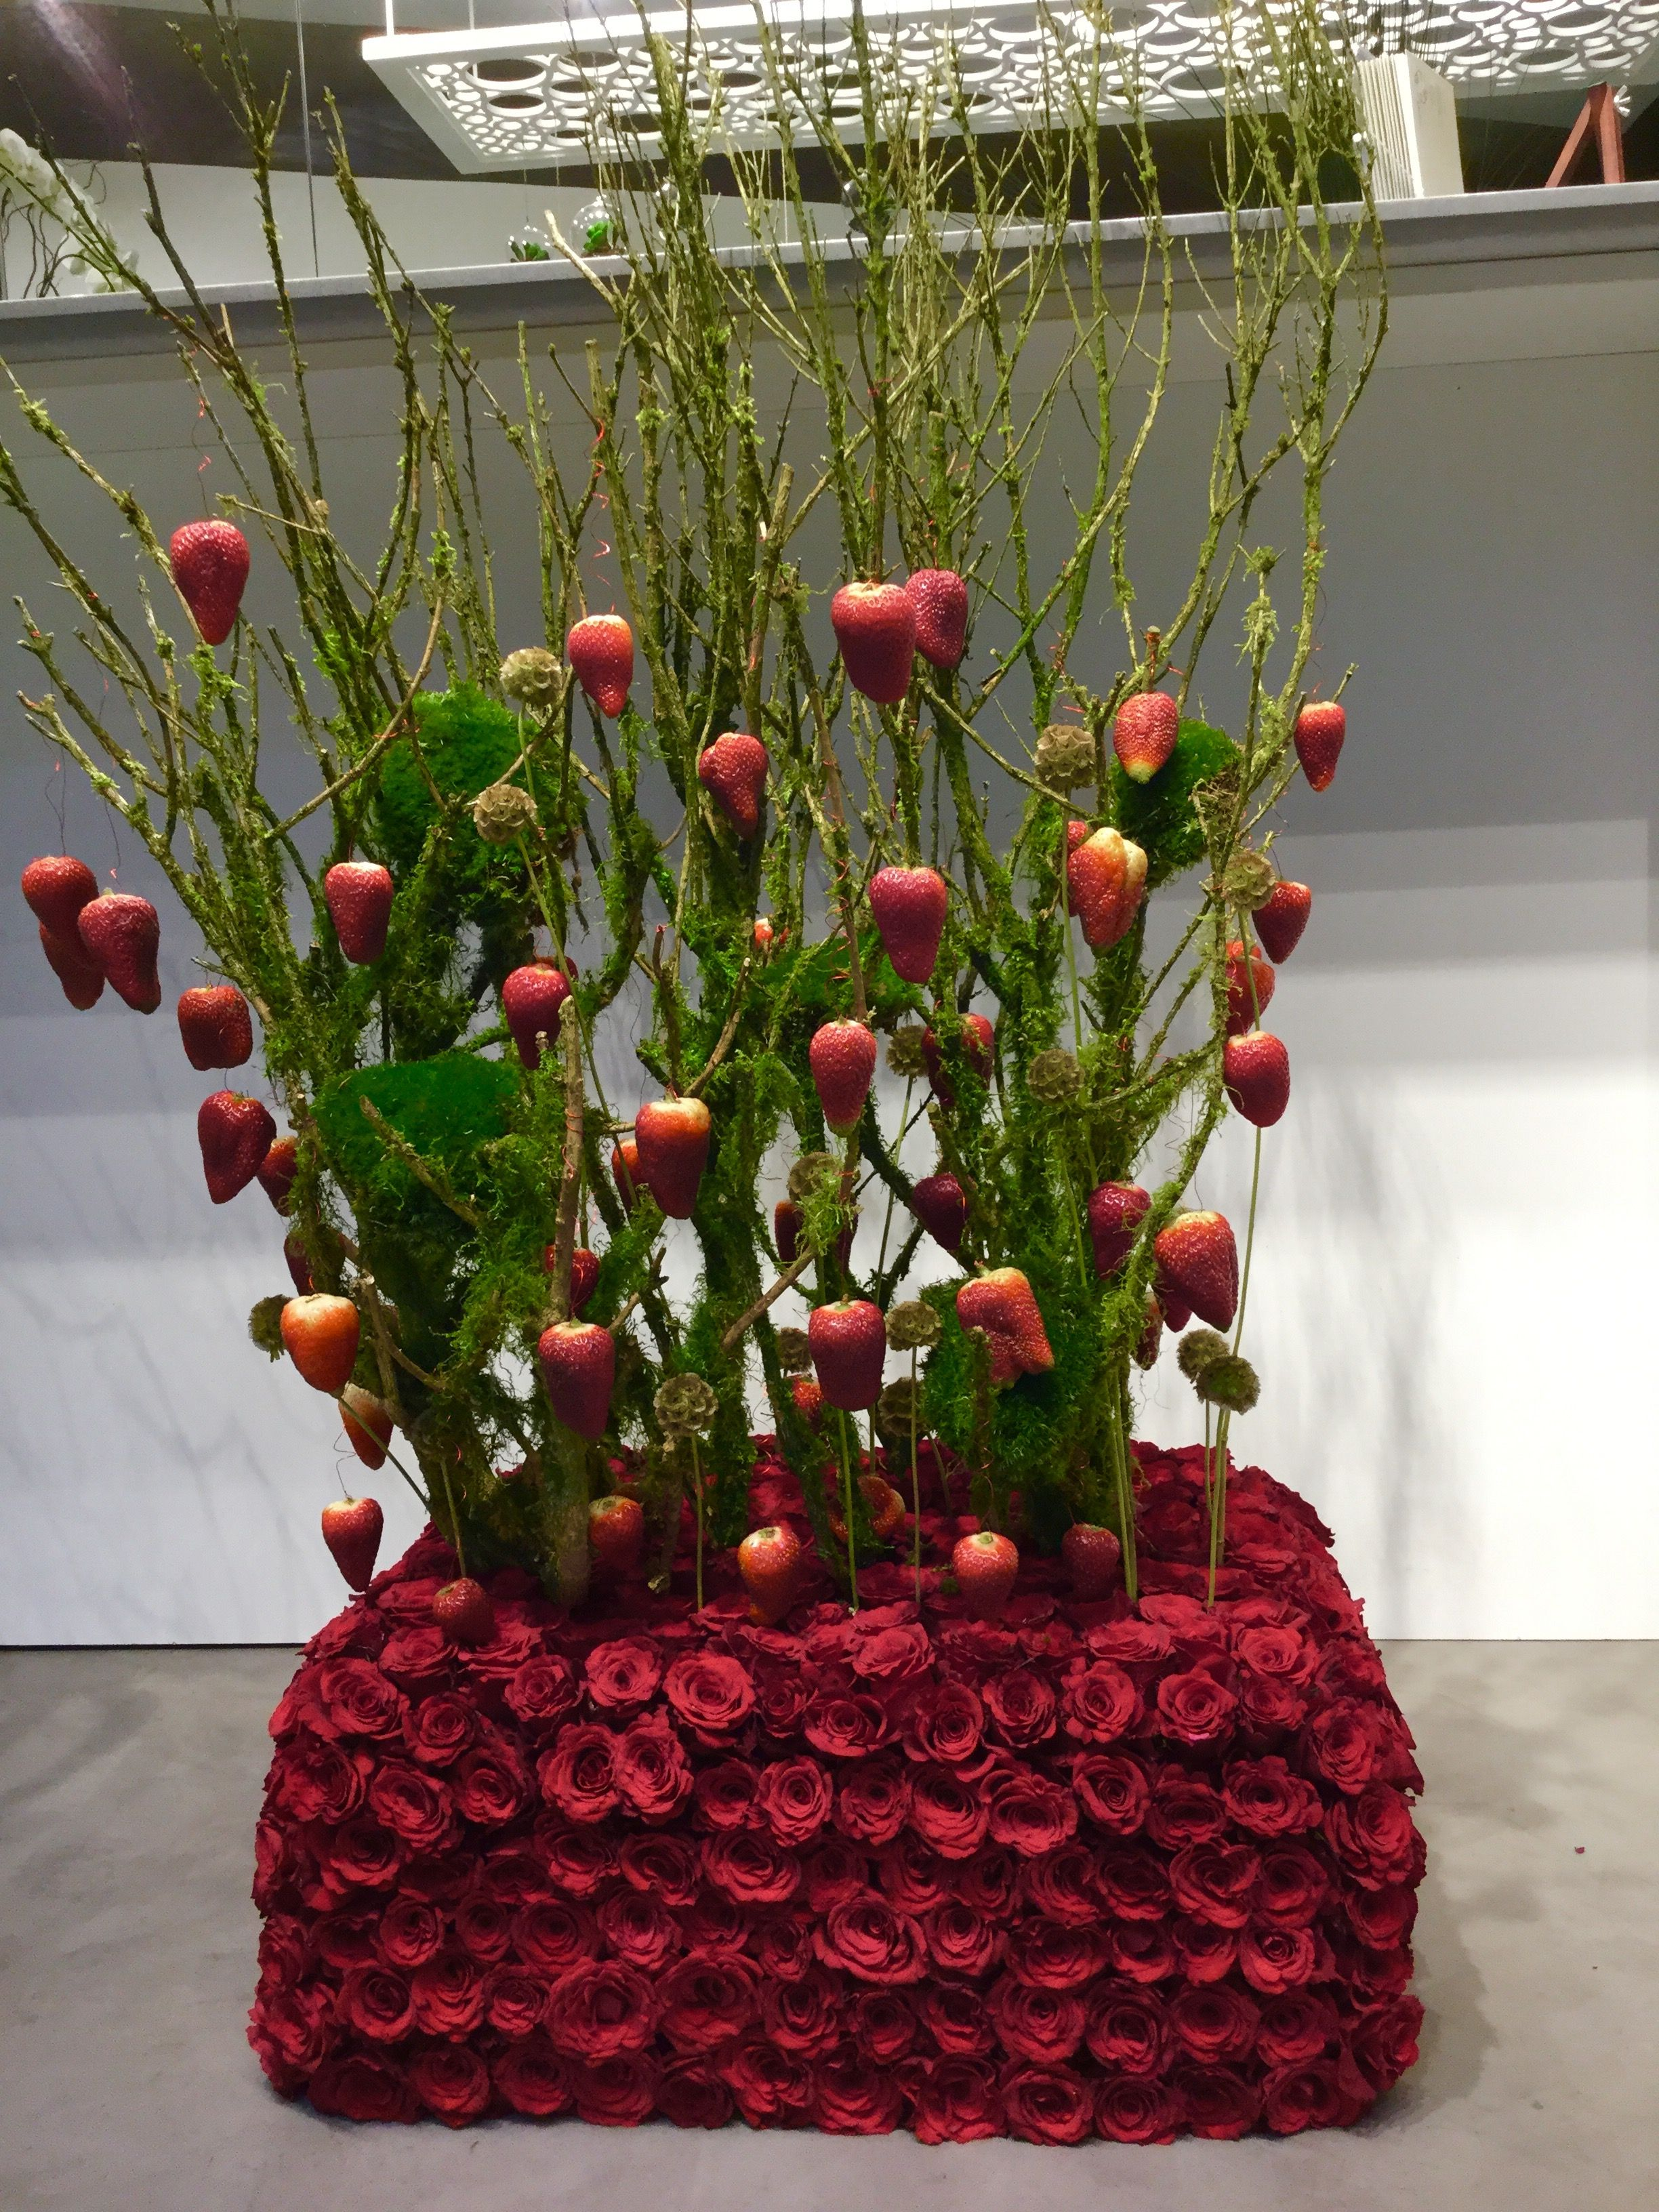 A unique composition of Fruits & Flowers created by